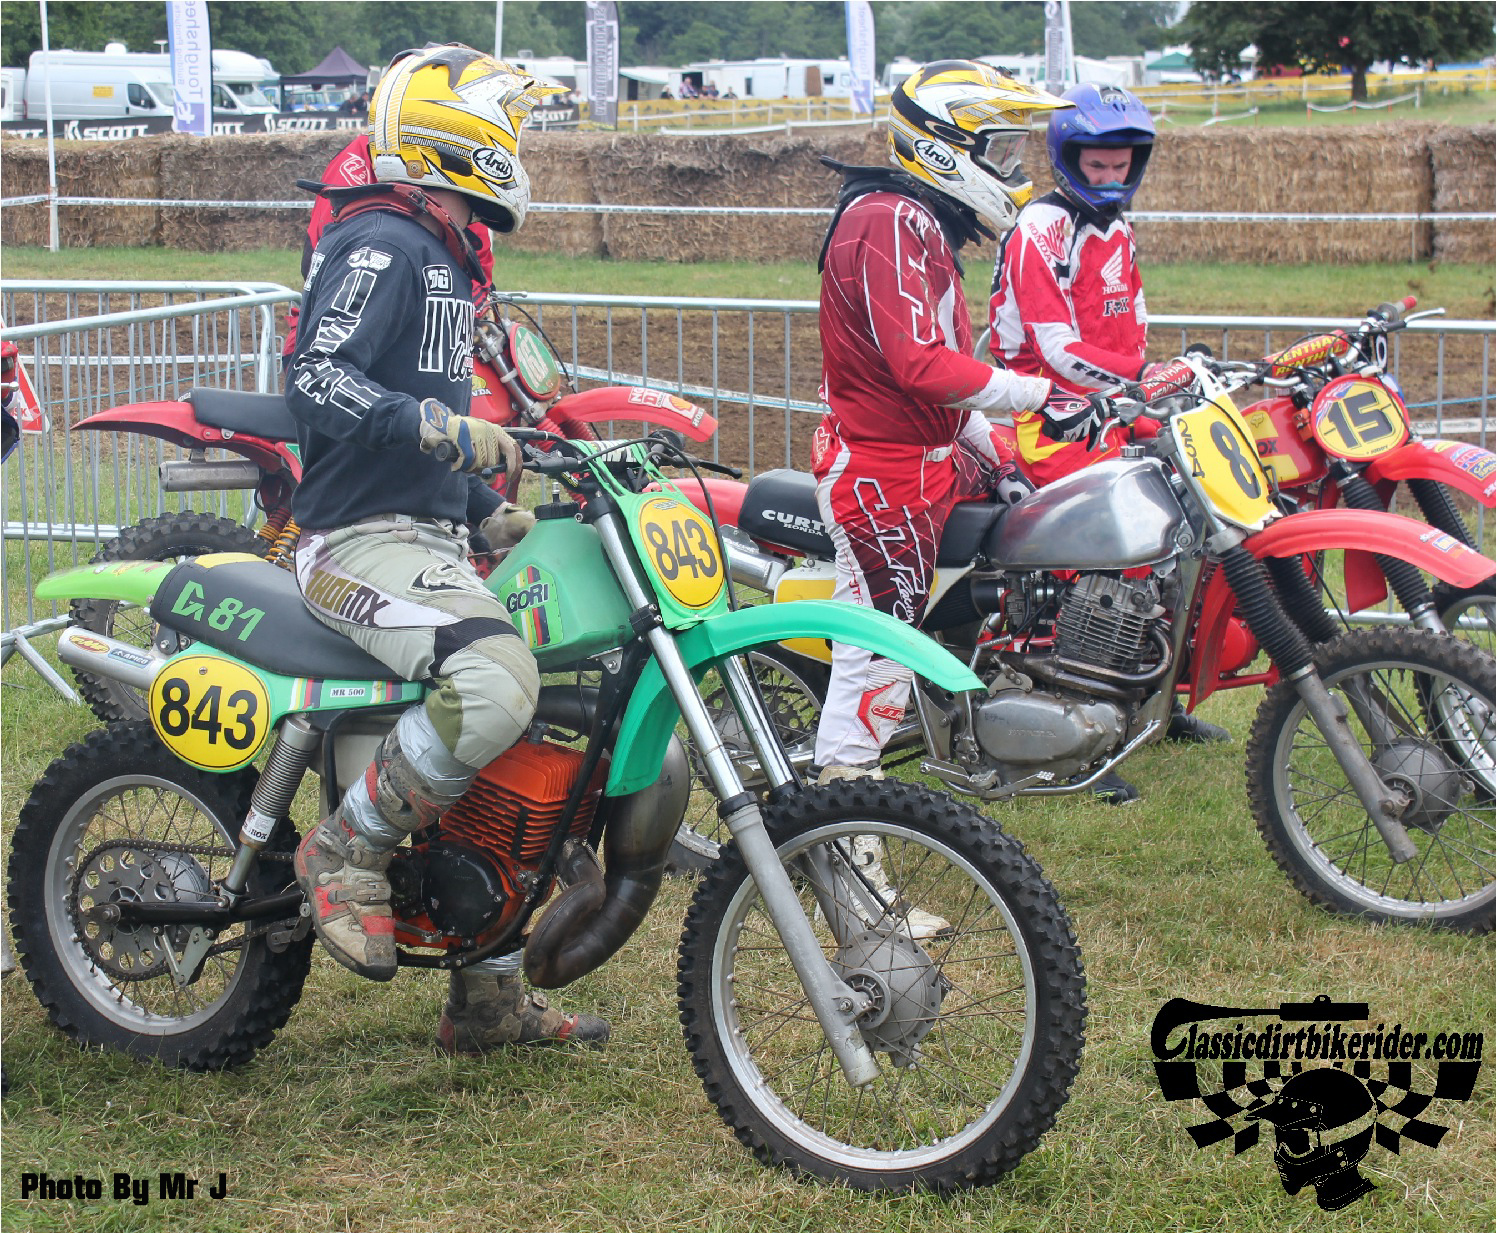 king of the castle 2015 photos Farleigh Castle twinshock motocross classicdirtbikerider.com 8